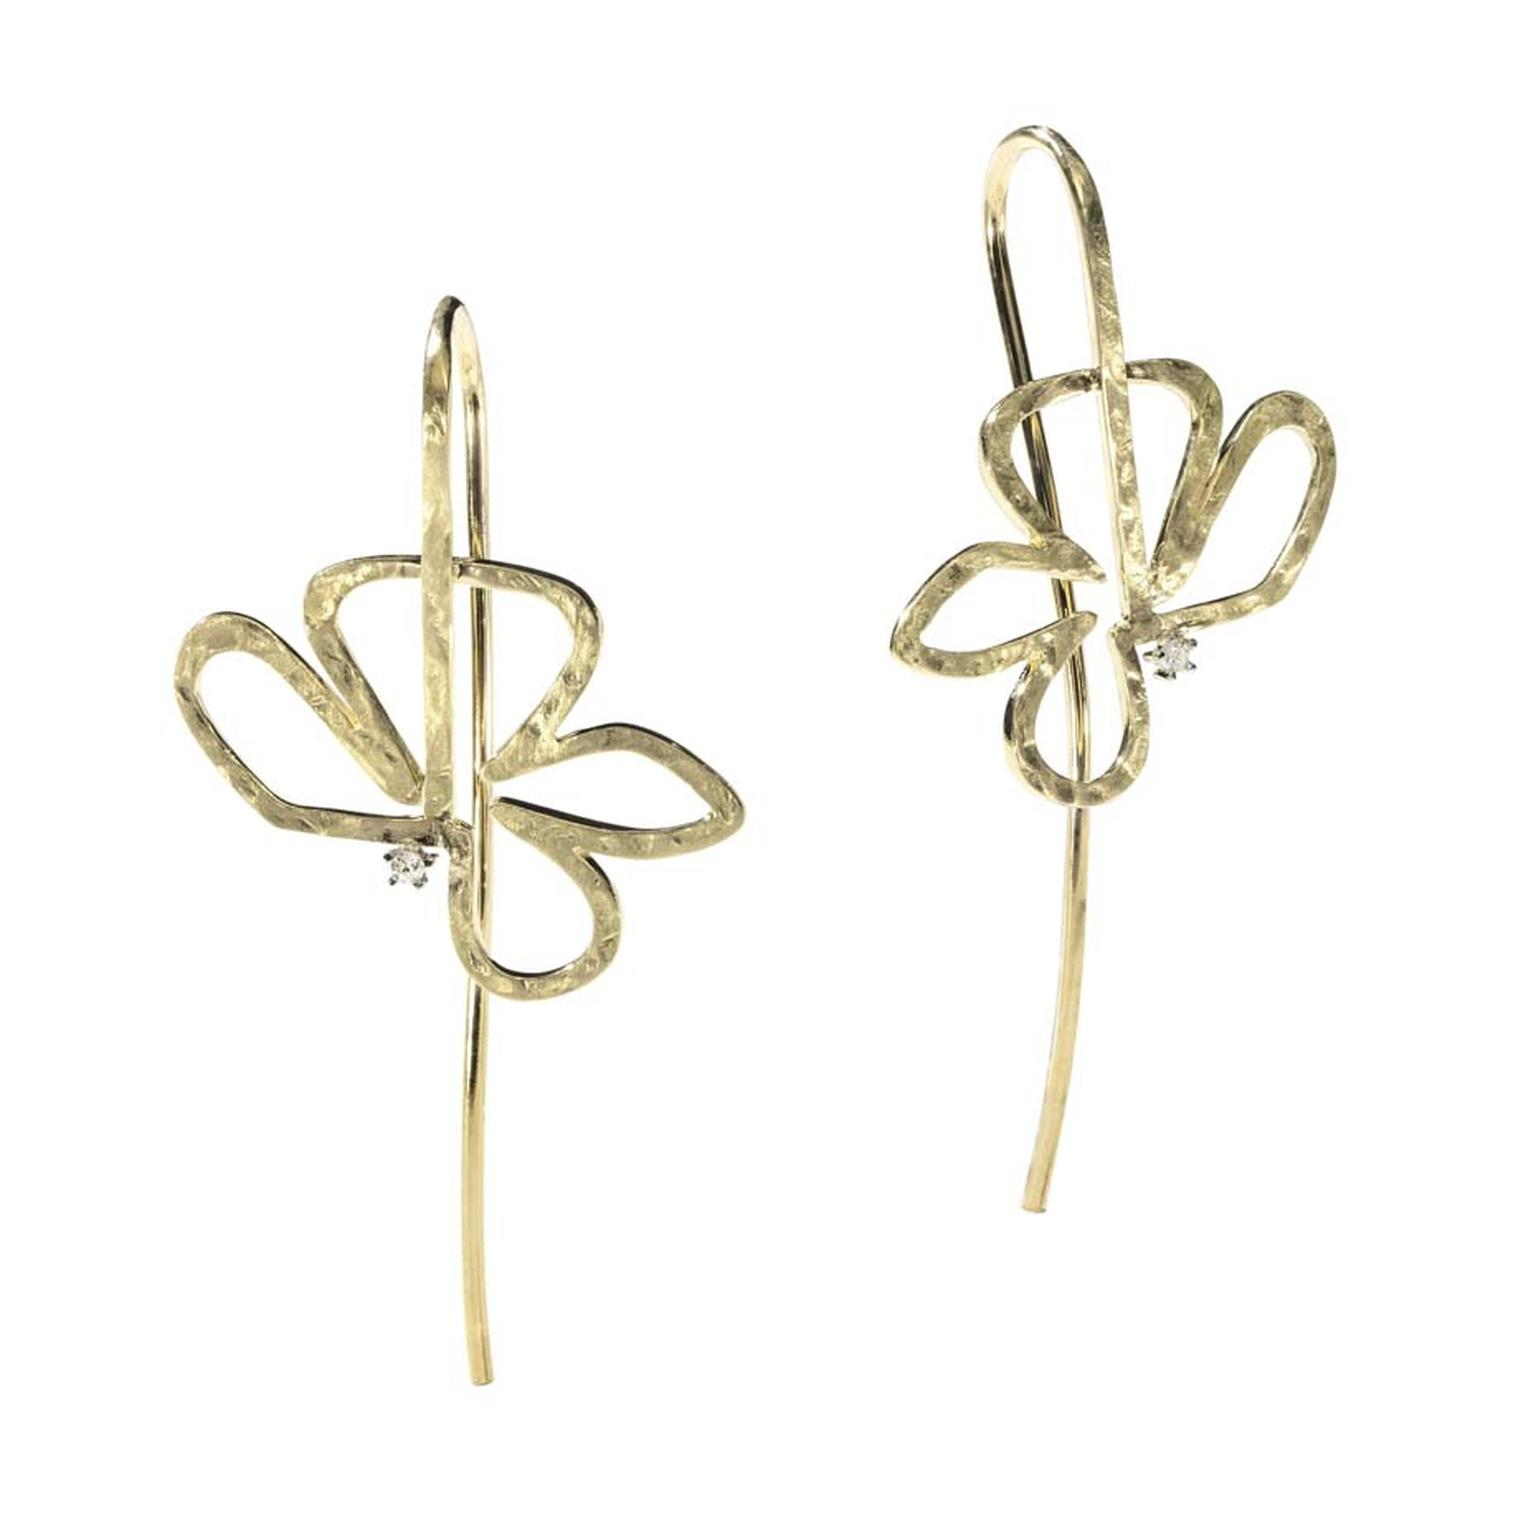 H.Stern's 2014 Oscar Niemeyer collection gold earrings featuring one diamond each displays a hollow flower design, representing Niemeyer's love of empty spaces.